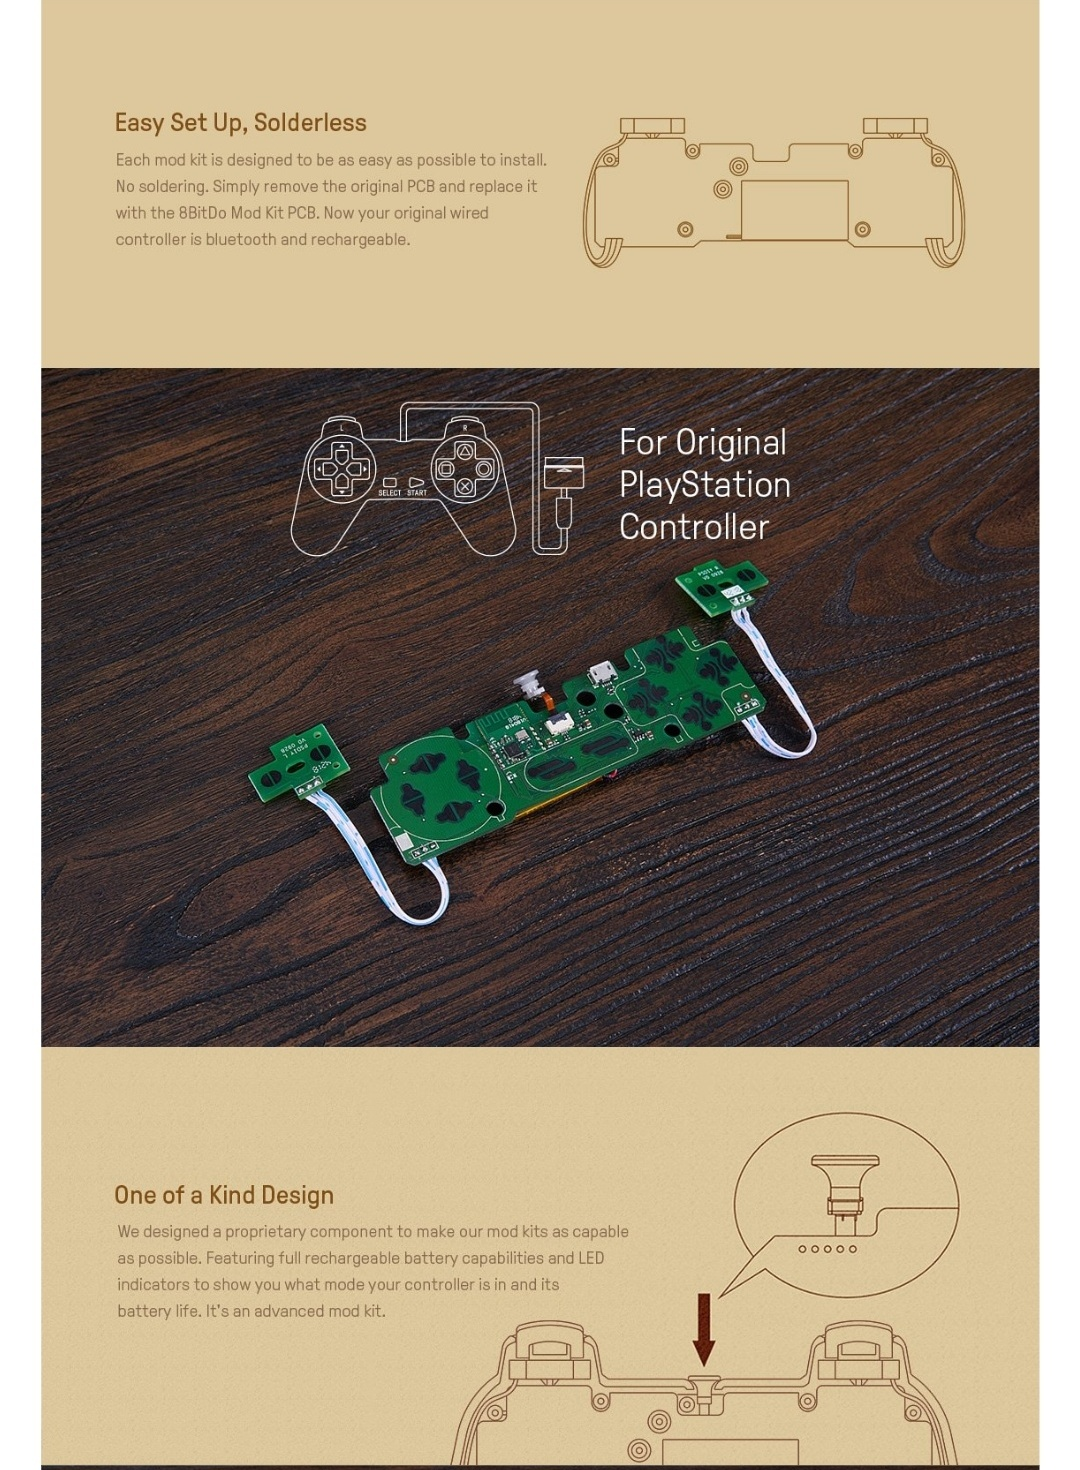 8Bitdo-Diy-Mod Kit-Playstation-Belchine-